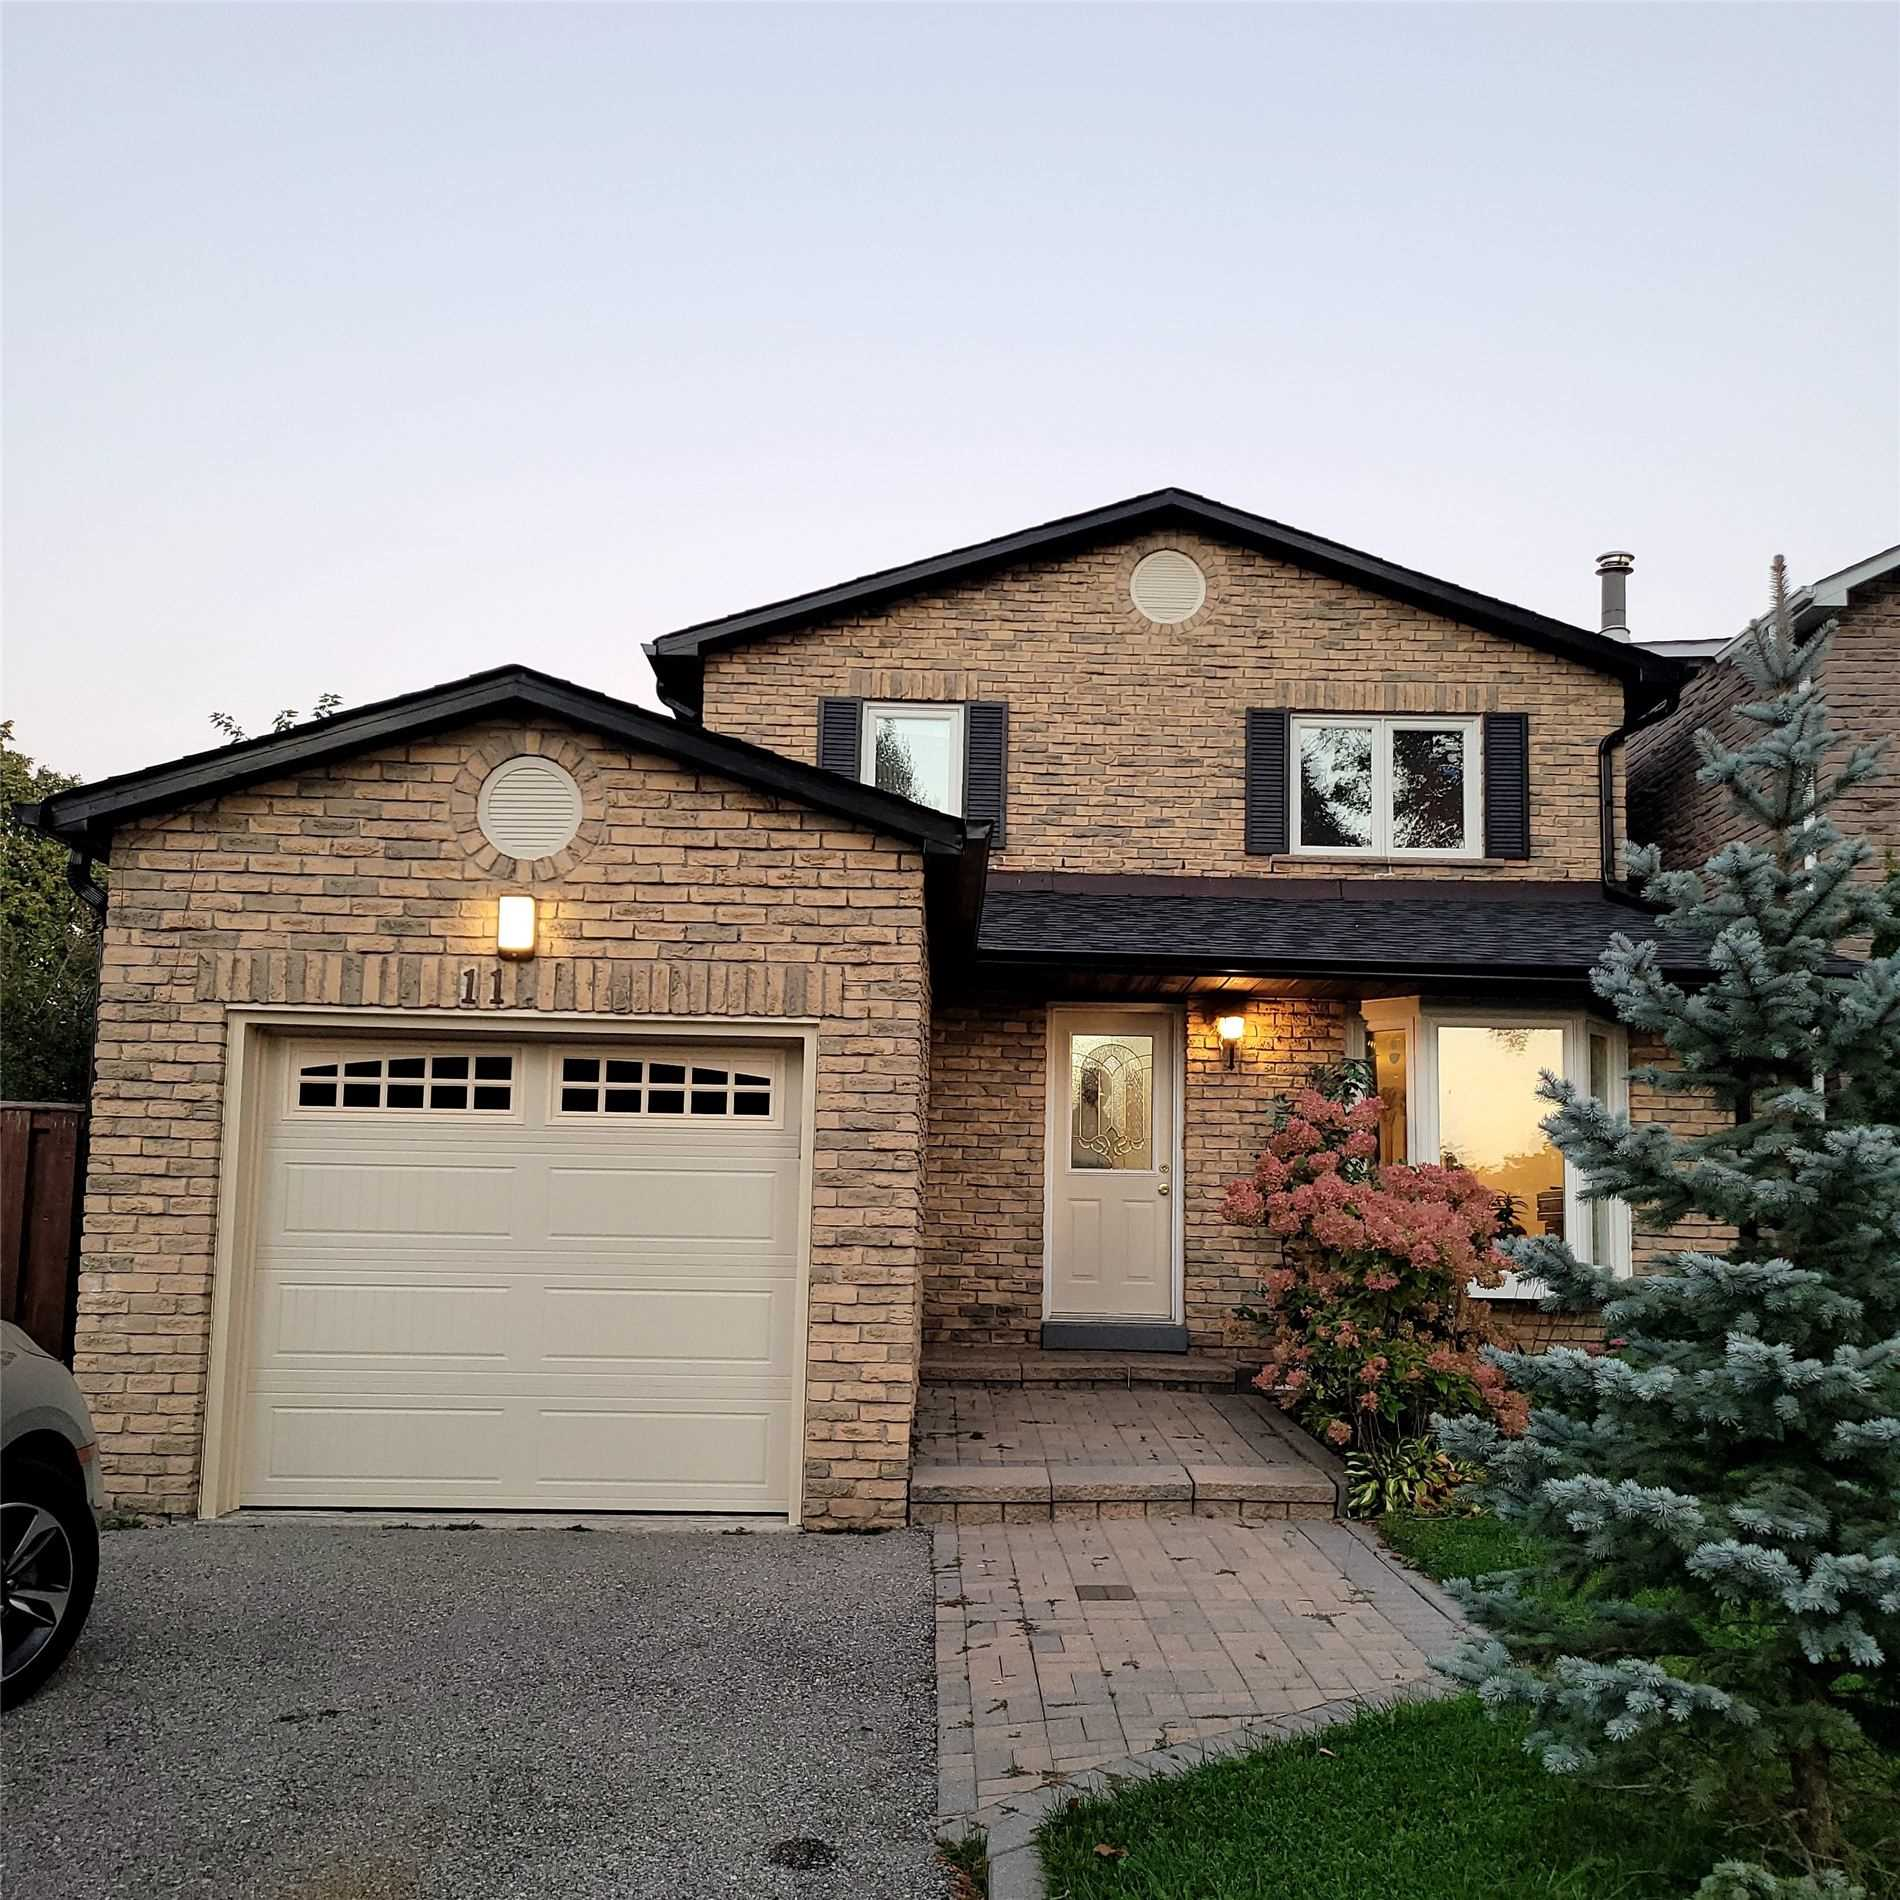 Detached house For Lease In Markham - 11 Tunney Cres, Markham, Ontario, Canada L3P4L4 , 3 Bedrooms Bedrooms, ,3 BathroomsBathrooms,Detached,For Lease,Tunney